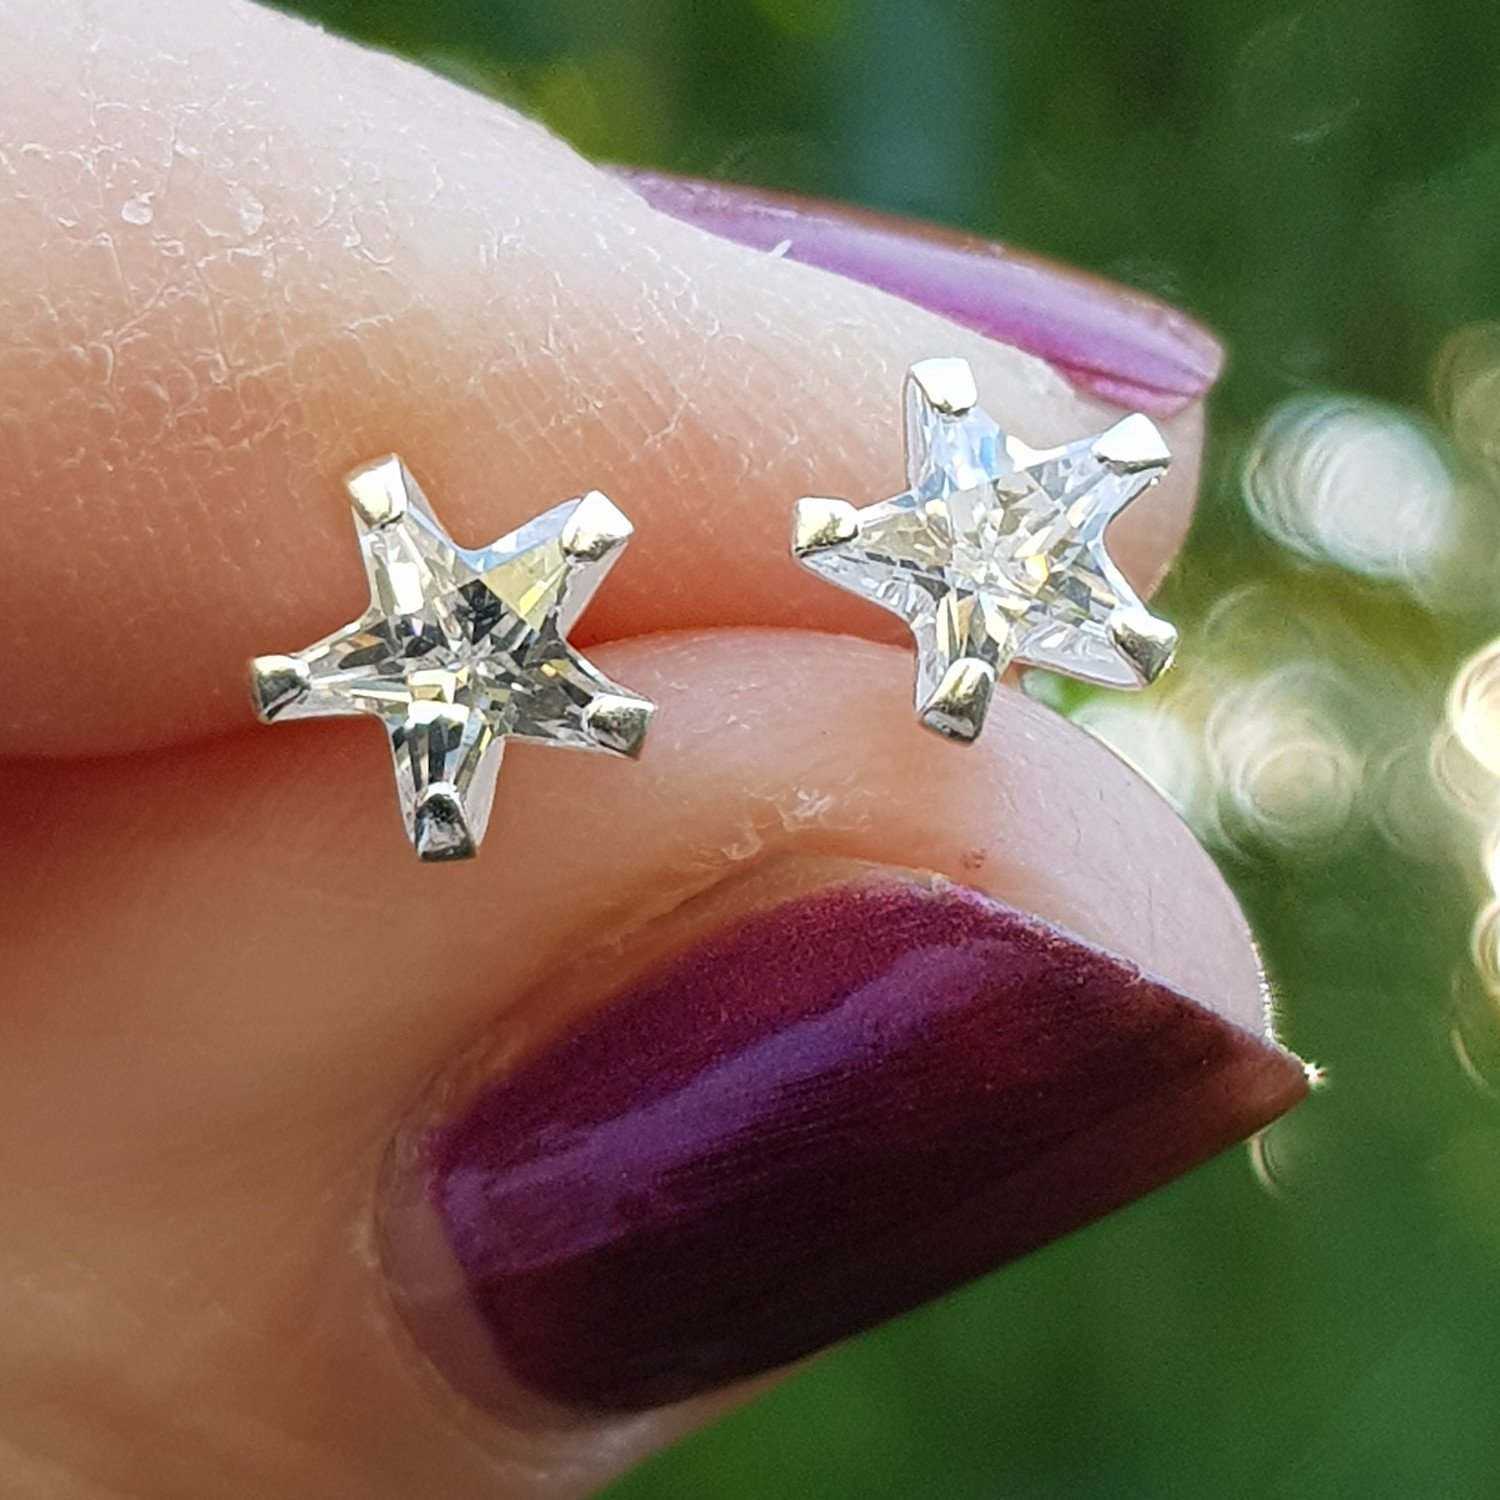 DEAL OF THE WEEK - Silver star, cubic zirconia star earrings. Were £16 - Now only £11. Free delivery